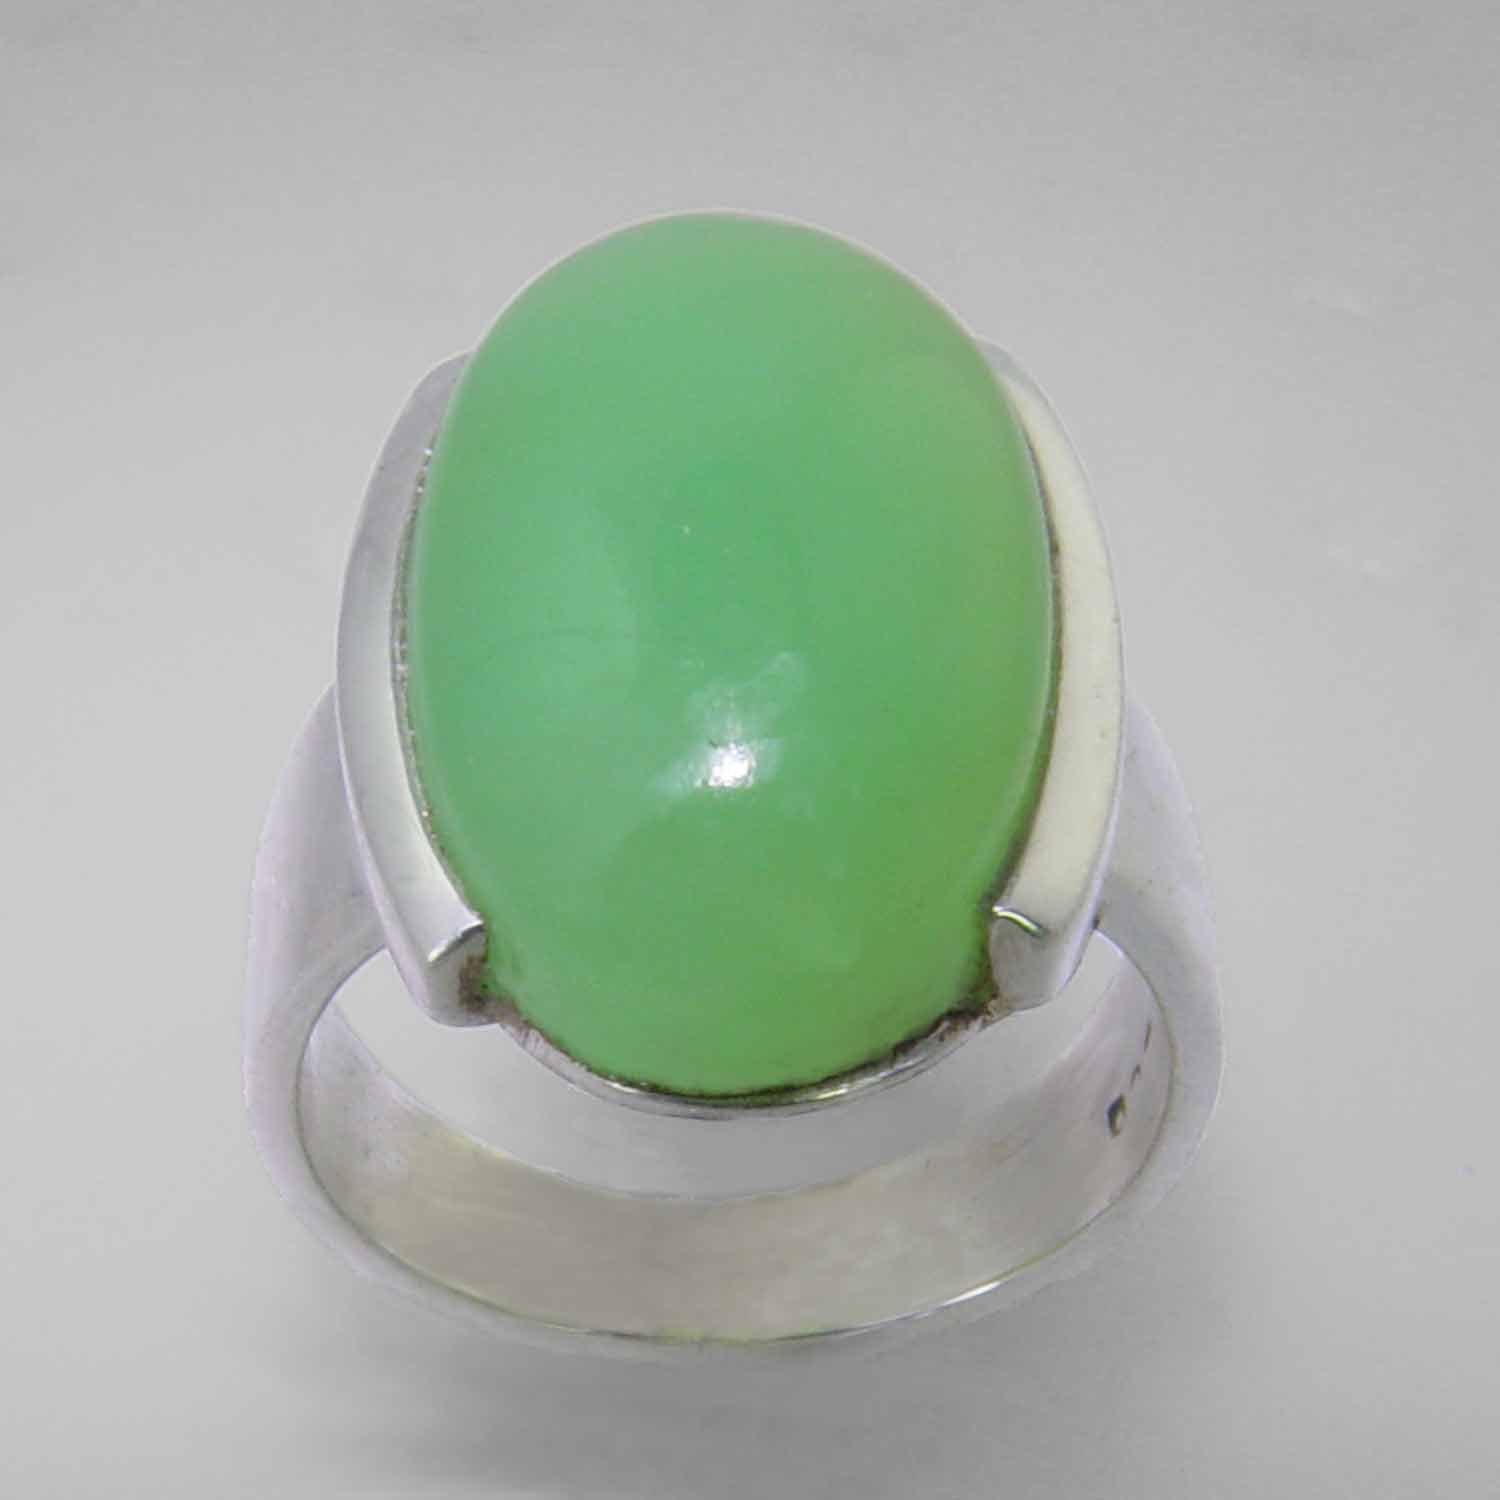 Chrysoprase 11.75 ct Oval Cab Semi Bezel Set Sterling Silver Ring, Size 6.5